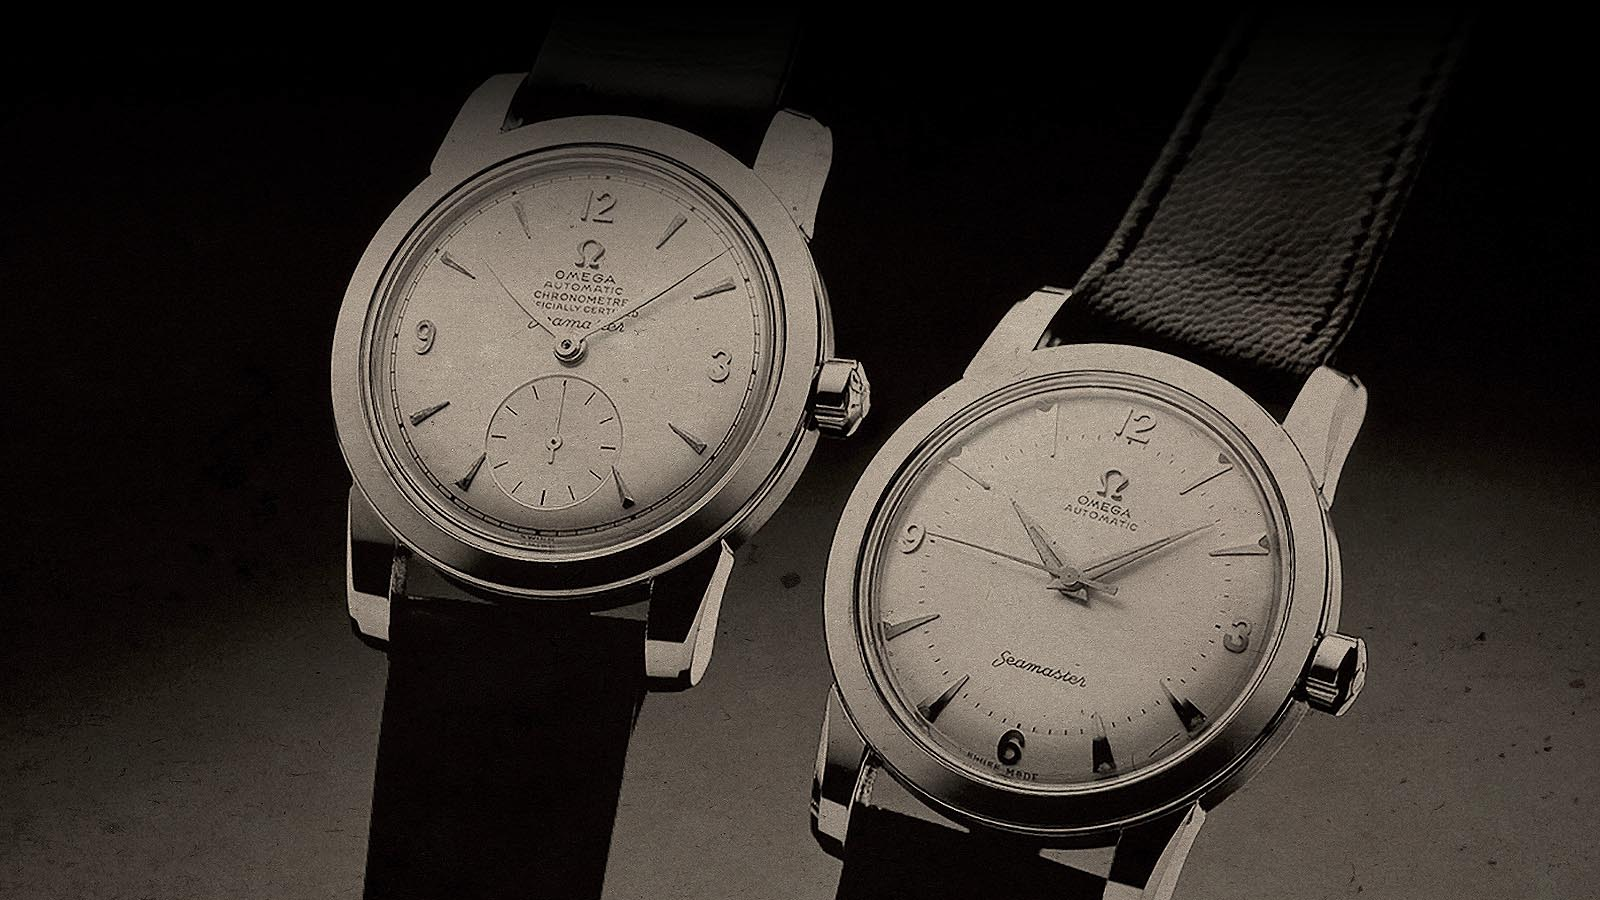 Vintage black and white photo of two original 1948 Seamaster watches